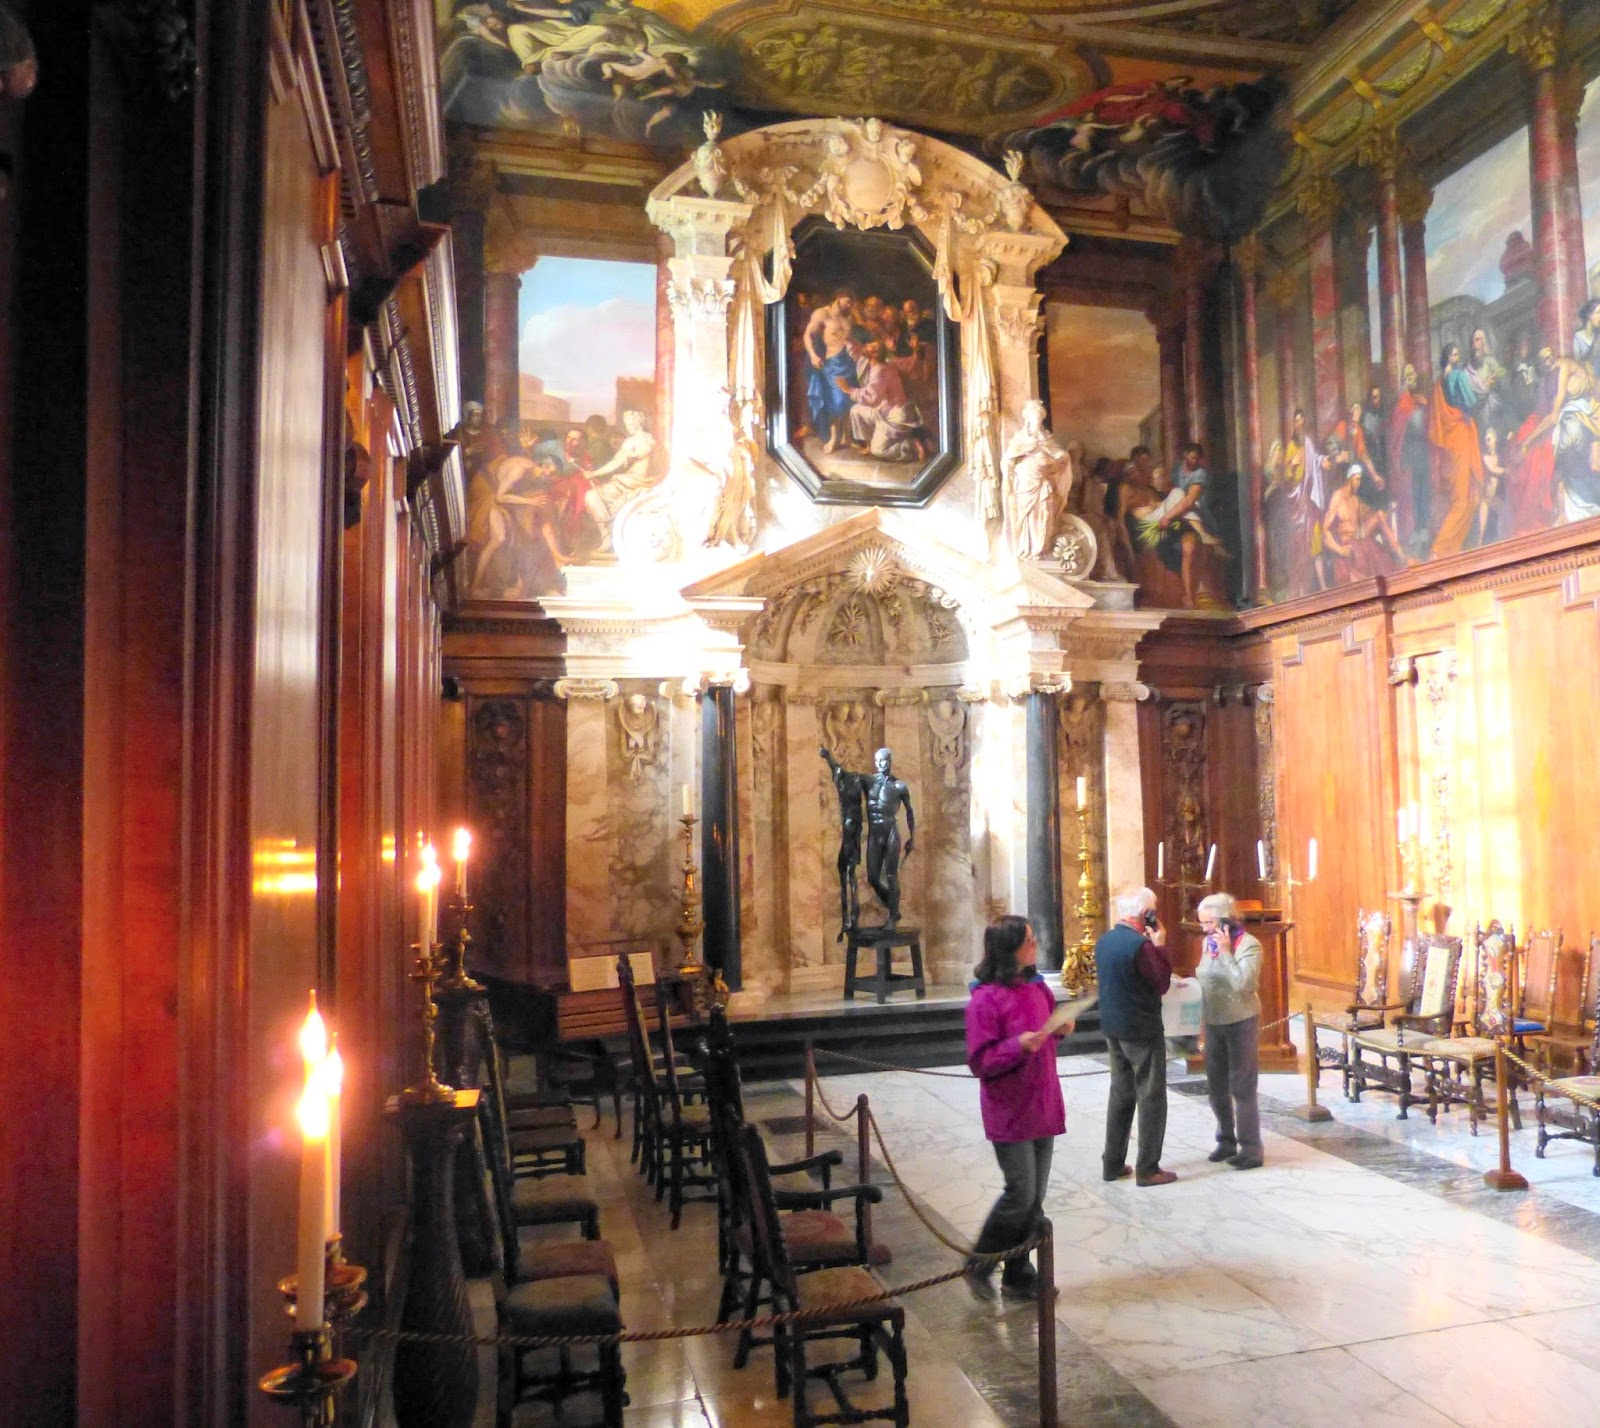 The Chapel, Chatsworth